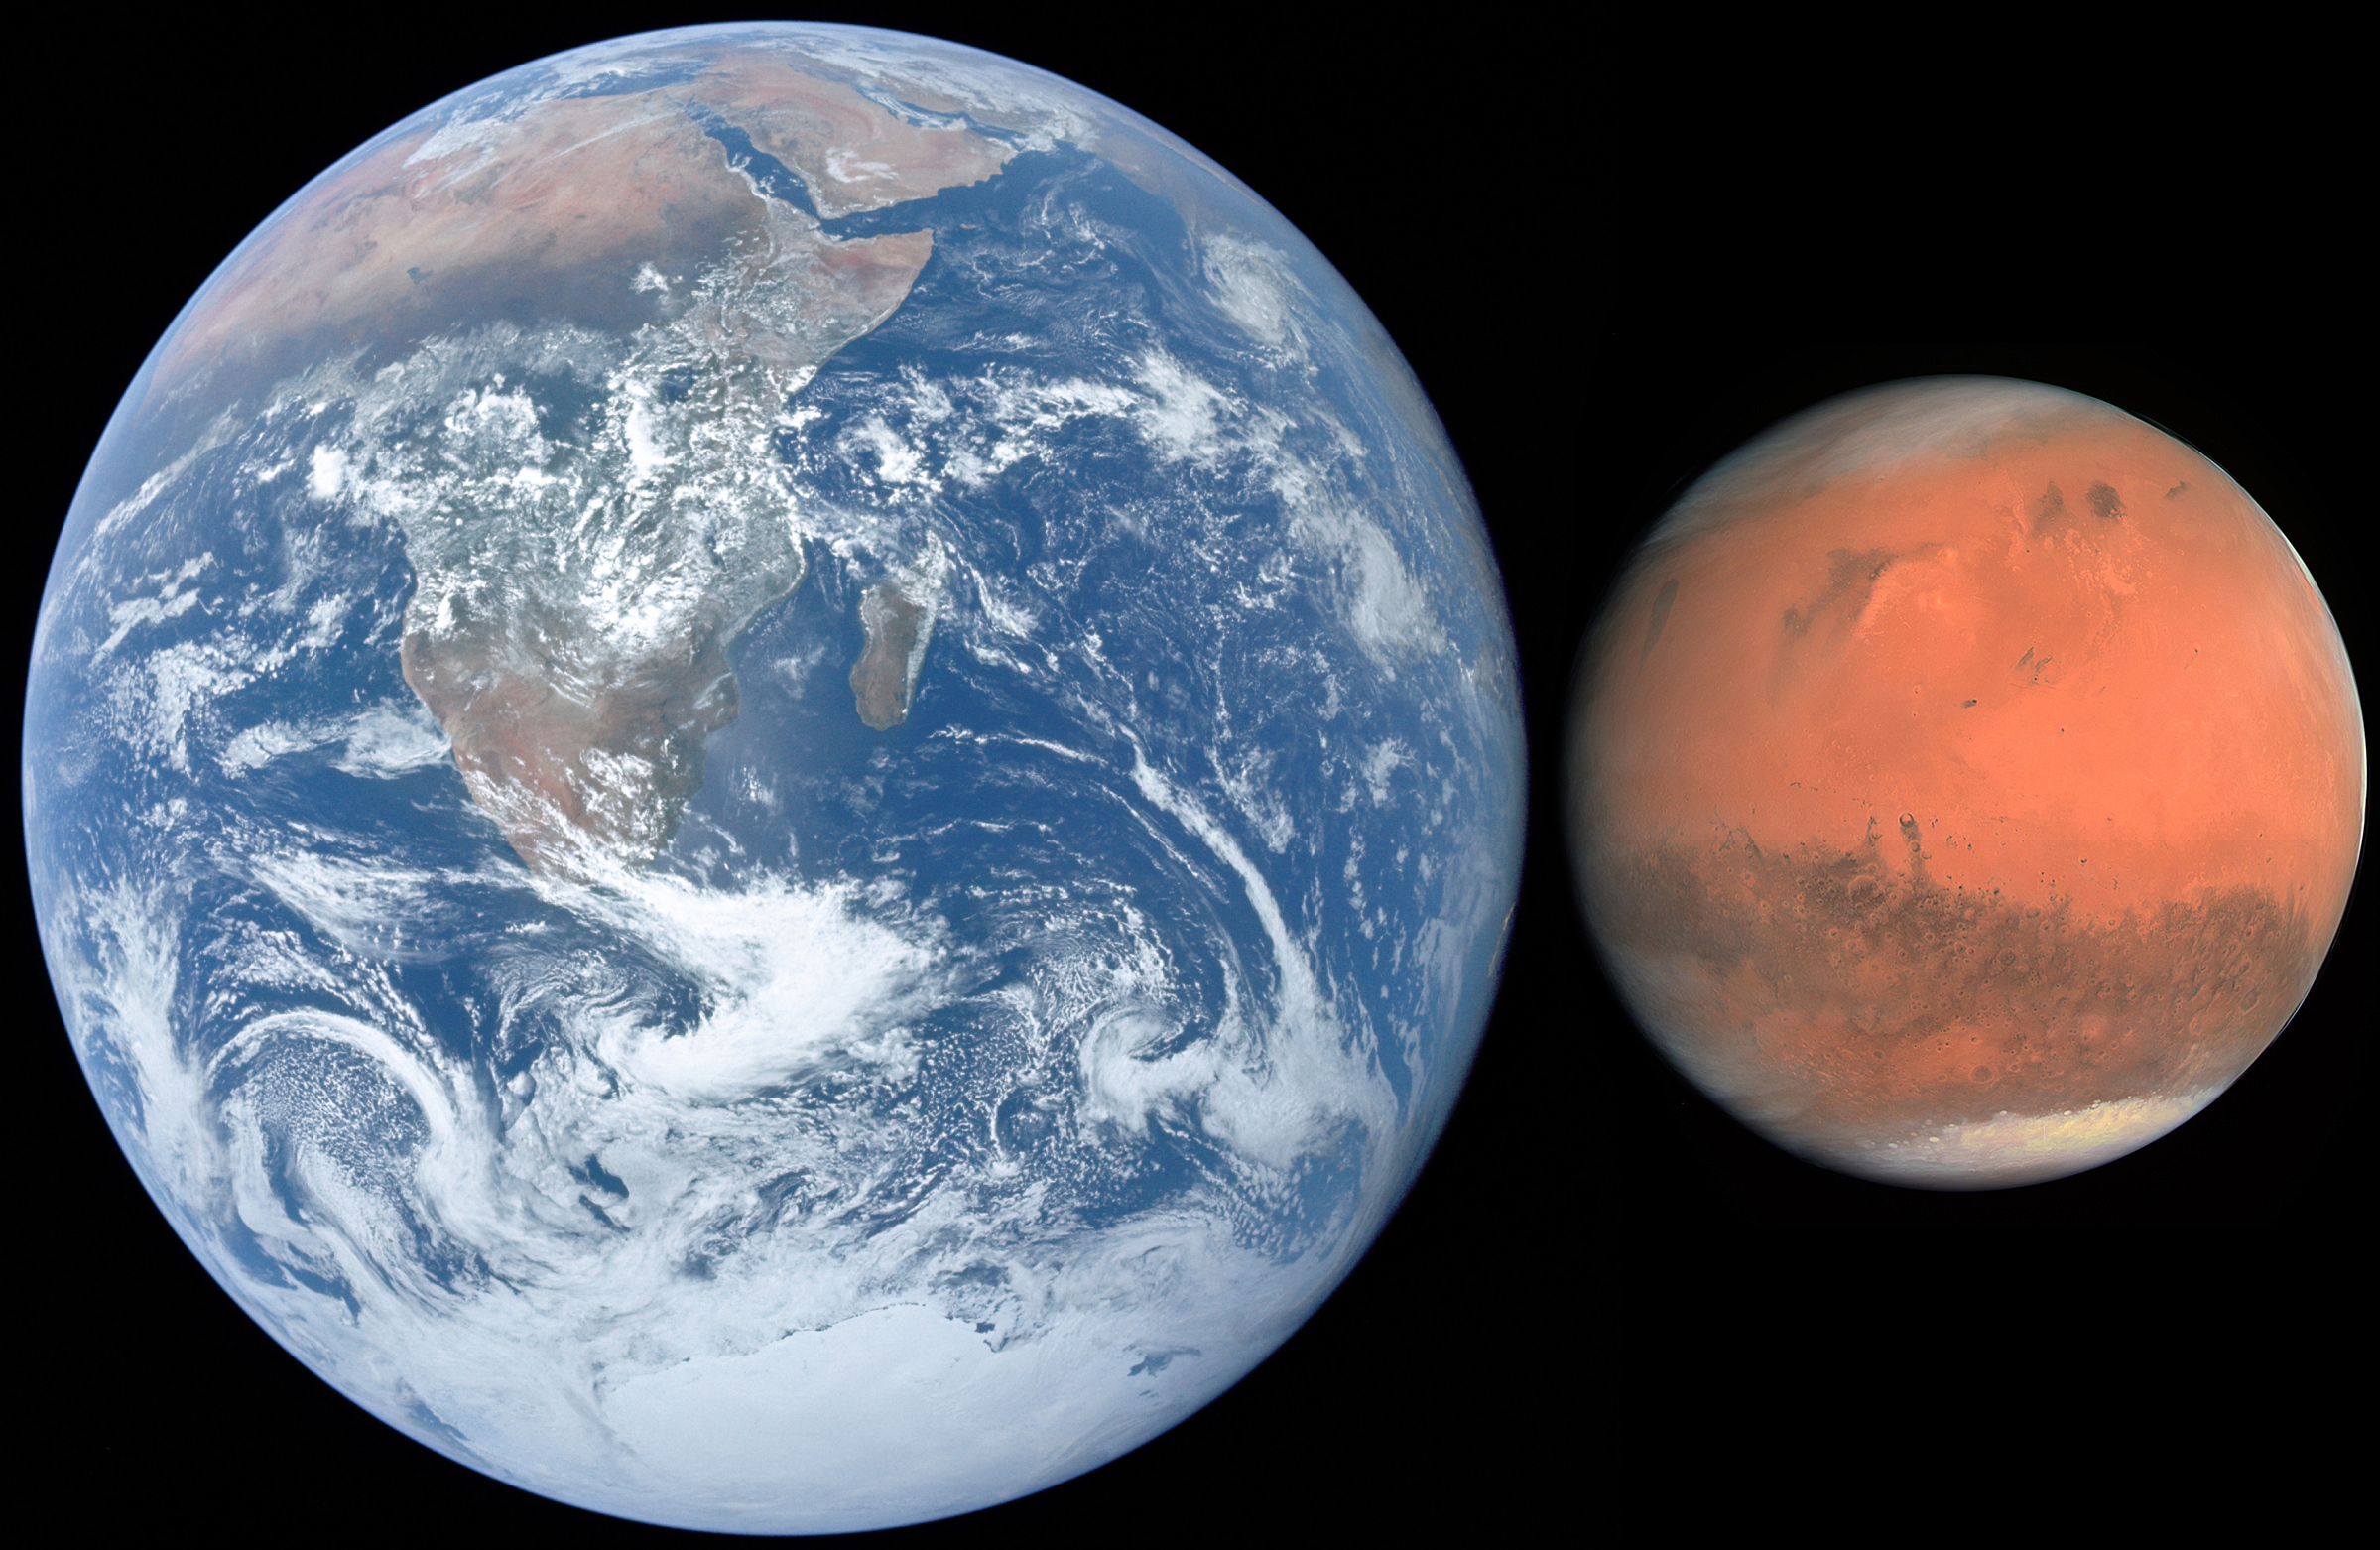 File:Mars, Earth size comparison.jpg - Wikipedia